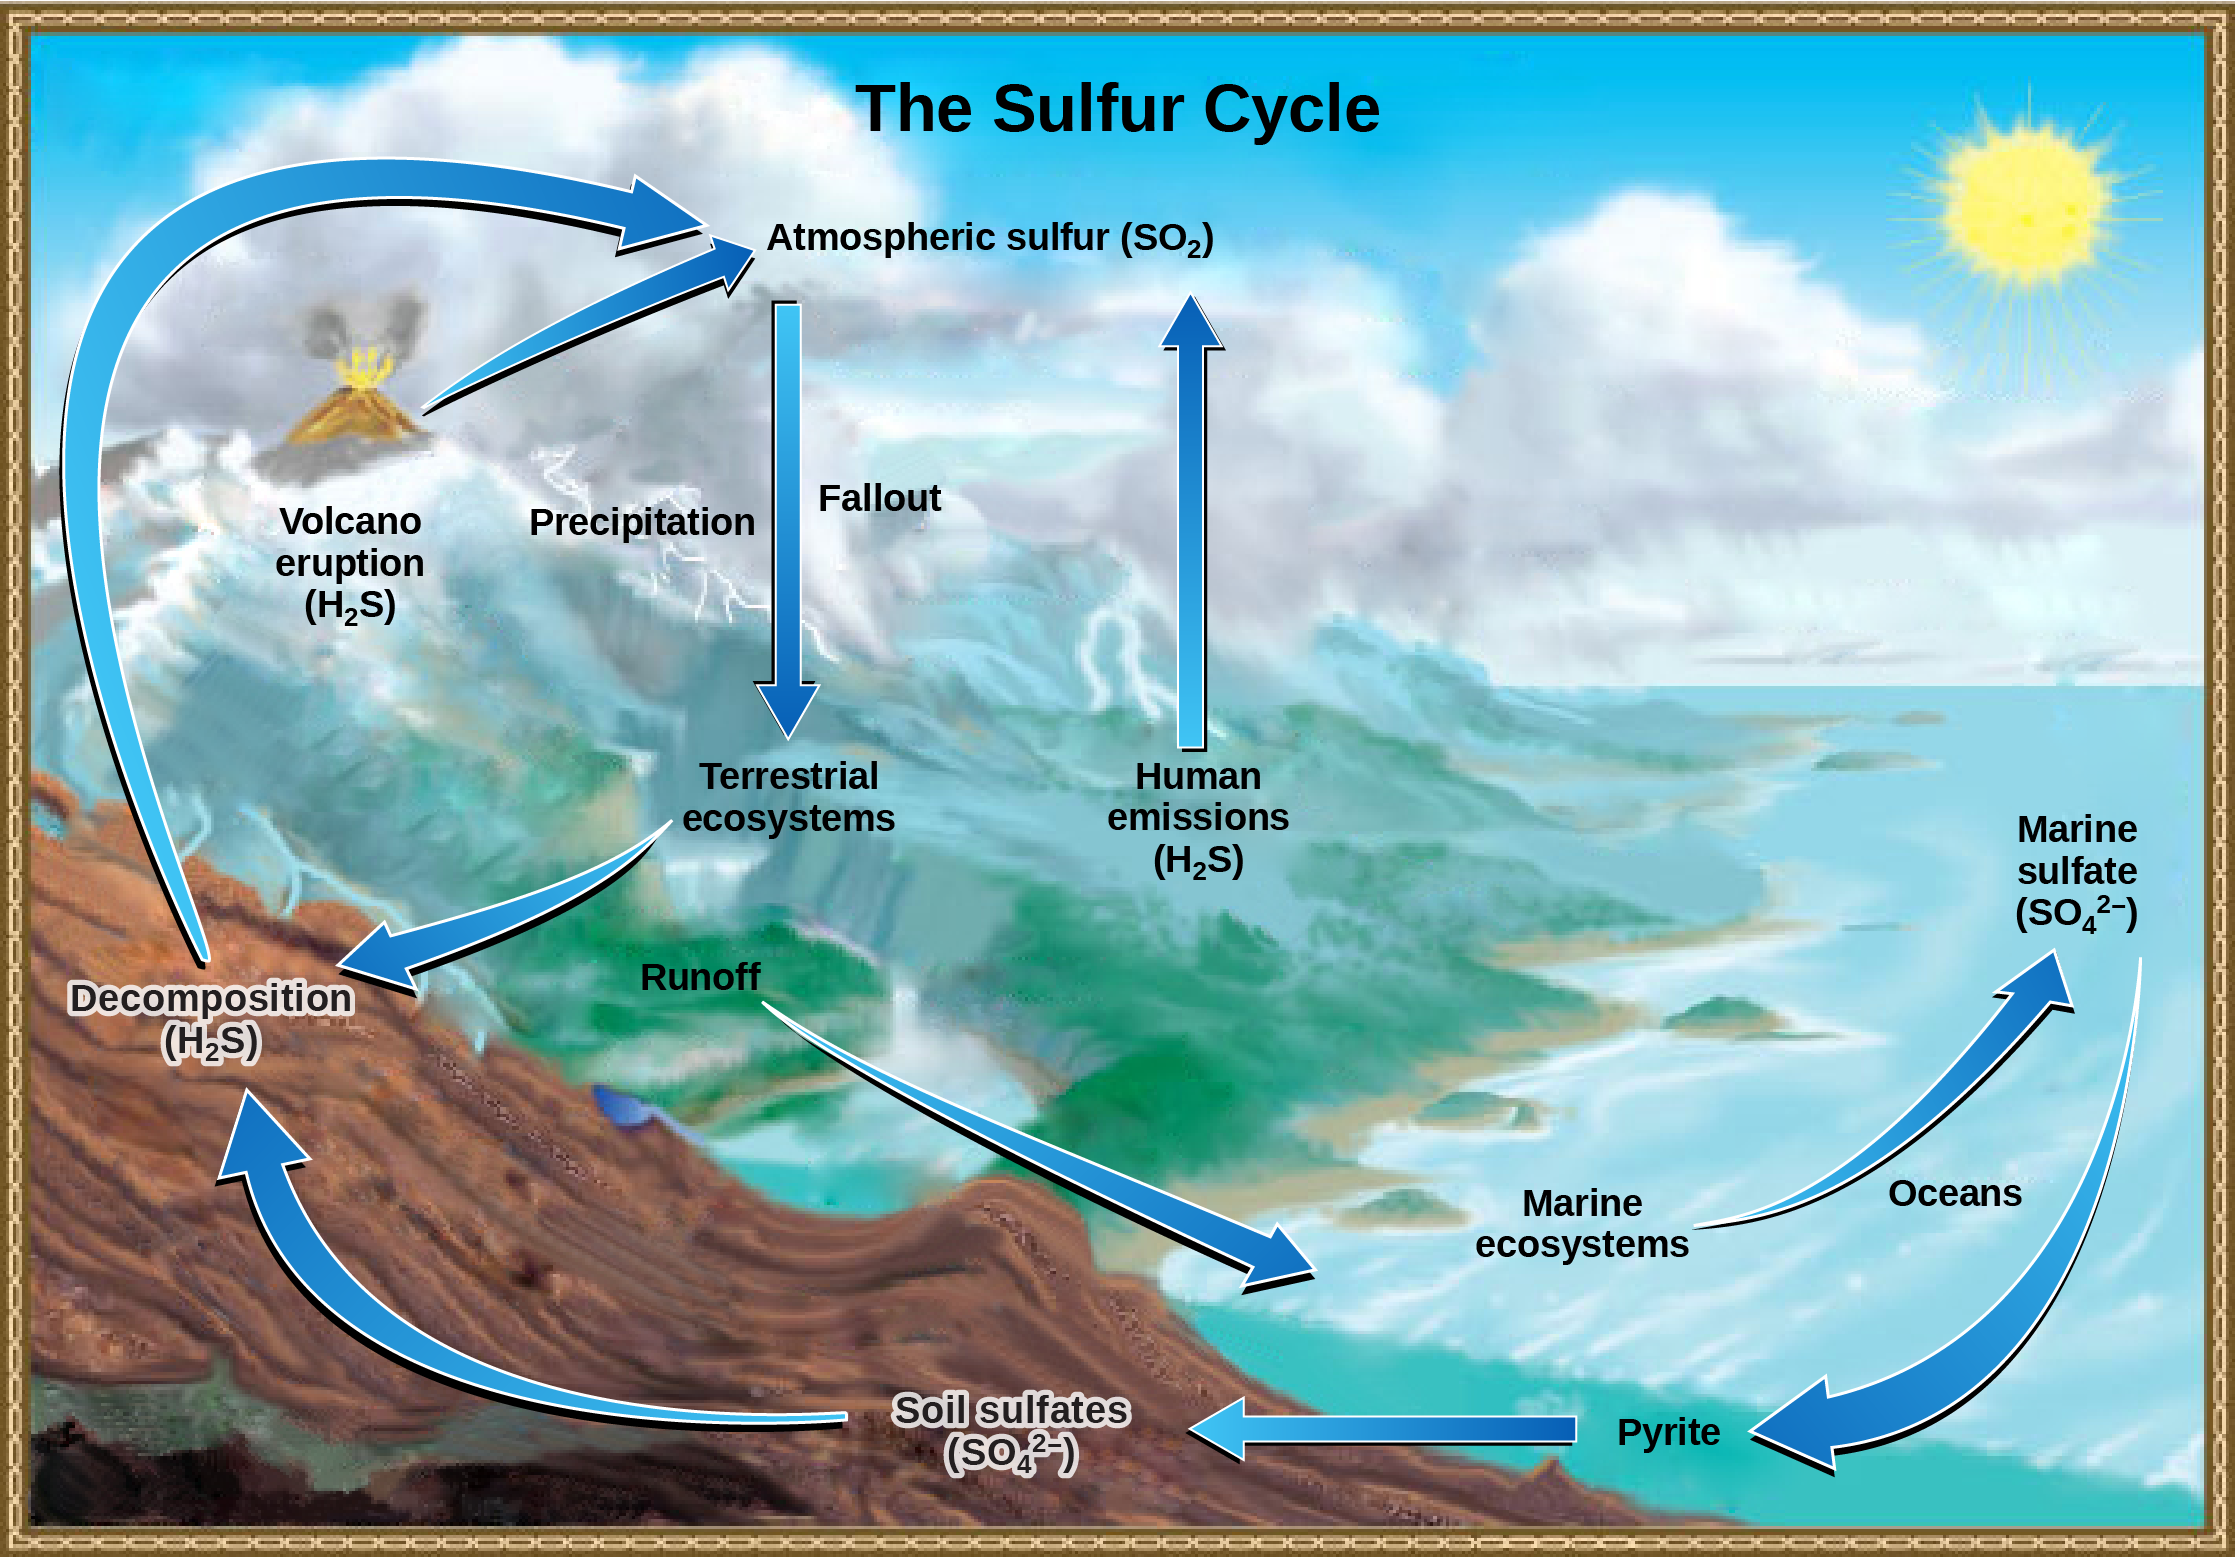 This illustration shows the sulfur cycle. Sulfur enters the atmosphere as sulfur dioxide, or upper S upper O 2, via human emissions, decomposition of upper H 2 upper S, and volcanic eruptions. Precipitation and fallout from the atmosphere return sulfur to the Earth, where it enters terrestrial ecosystems. Sulfur enters the oceans via runoff, where it becomes incorporated in marine ecosystems. Some marine sulfur becomes pyrite, which is trapped in sediment. If upwelling occurs, the pyrite enters the soil and is converted to soil sulfates.